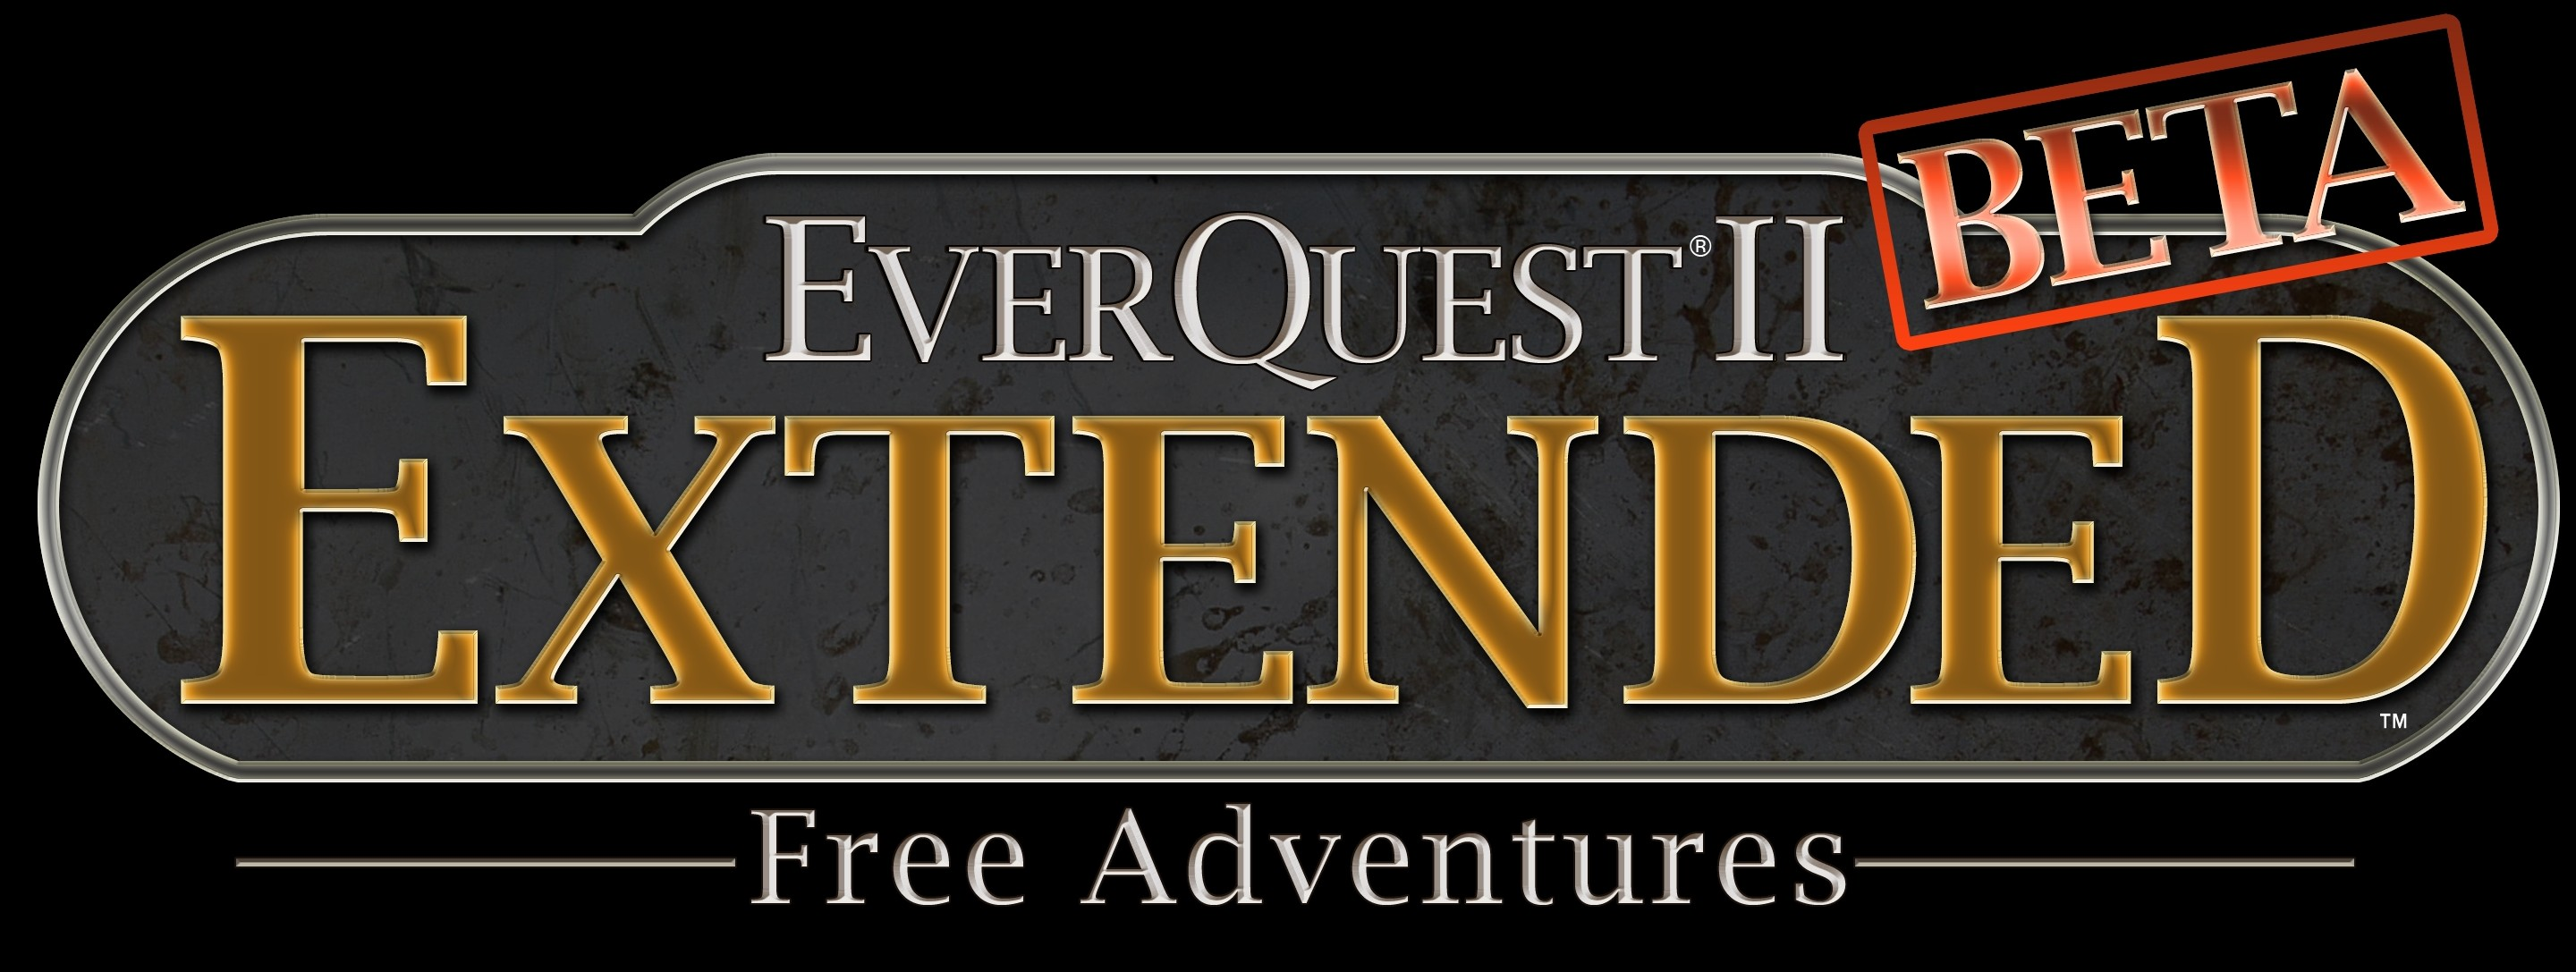 EverQuest II Extended BETA free adventures logo